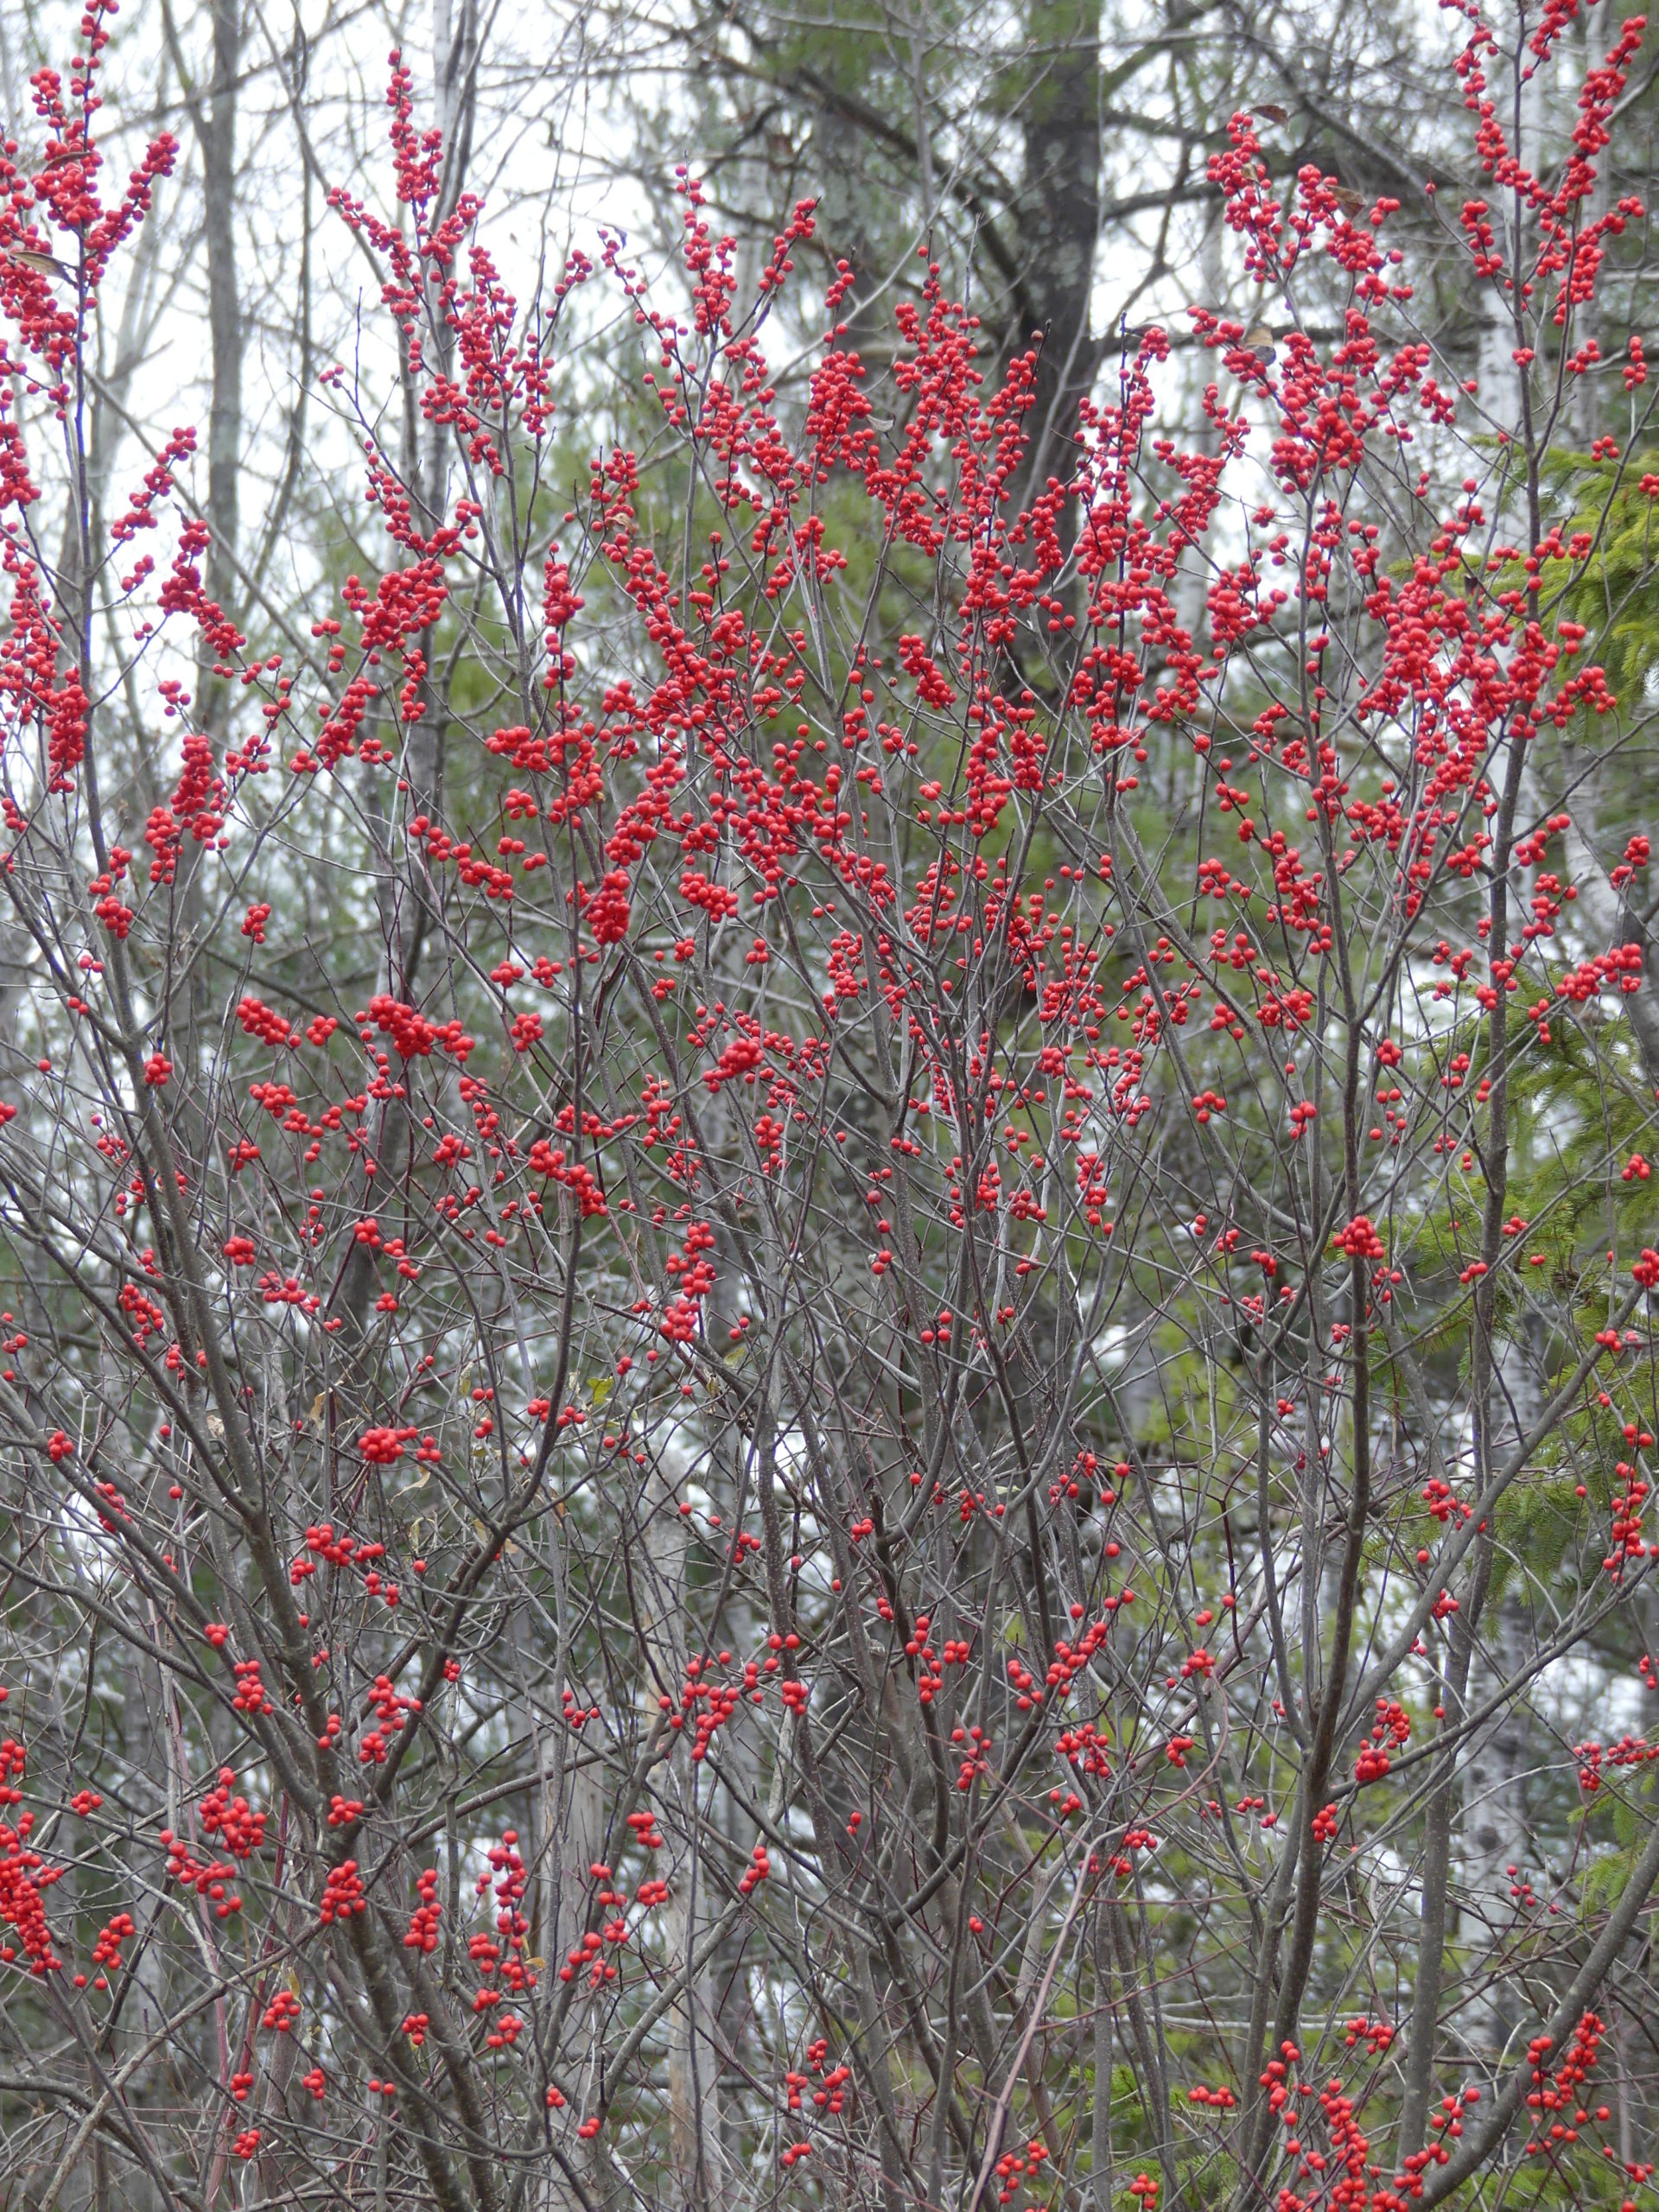 The native Ilex verticillata, or common winterberry, can be confused with the bittersweet, but the winterberry's fruits are a bright red and born on stems, not vines. This shrub or small tree can grow up to 14 feet tall. The winterberry prefers wet soils while the bittersweet isn't that choosy. Both live at the edge of the woods.